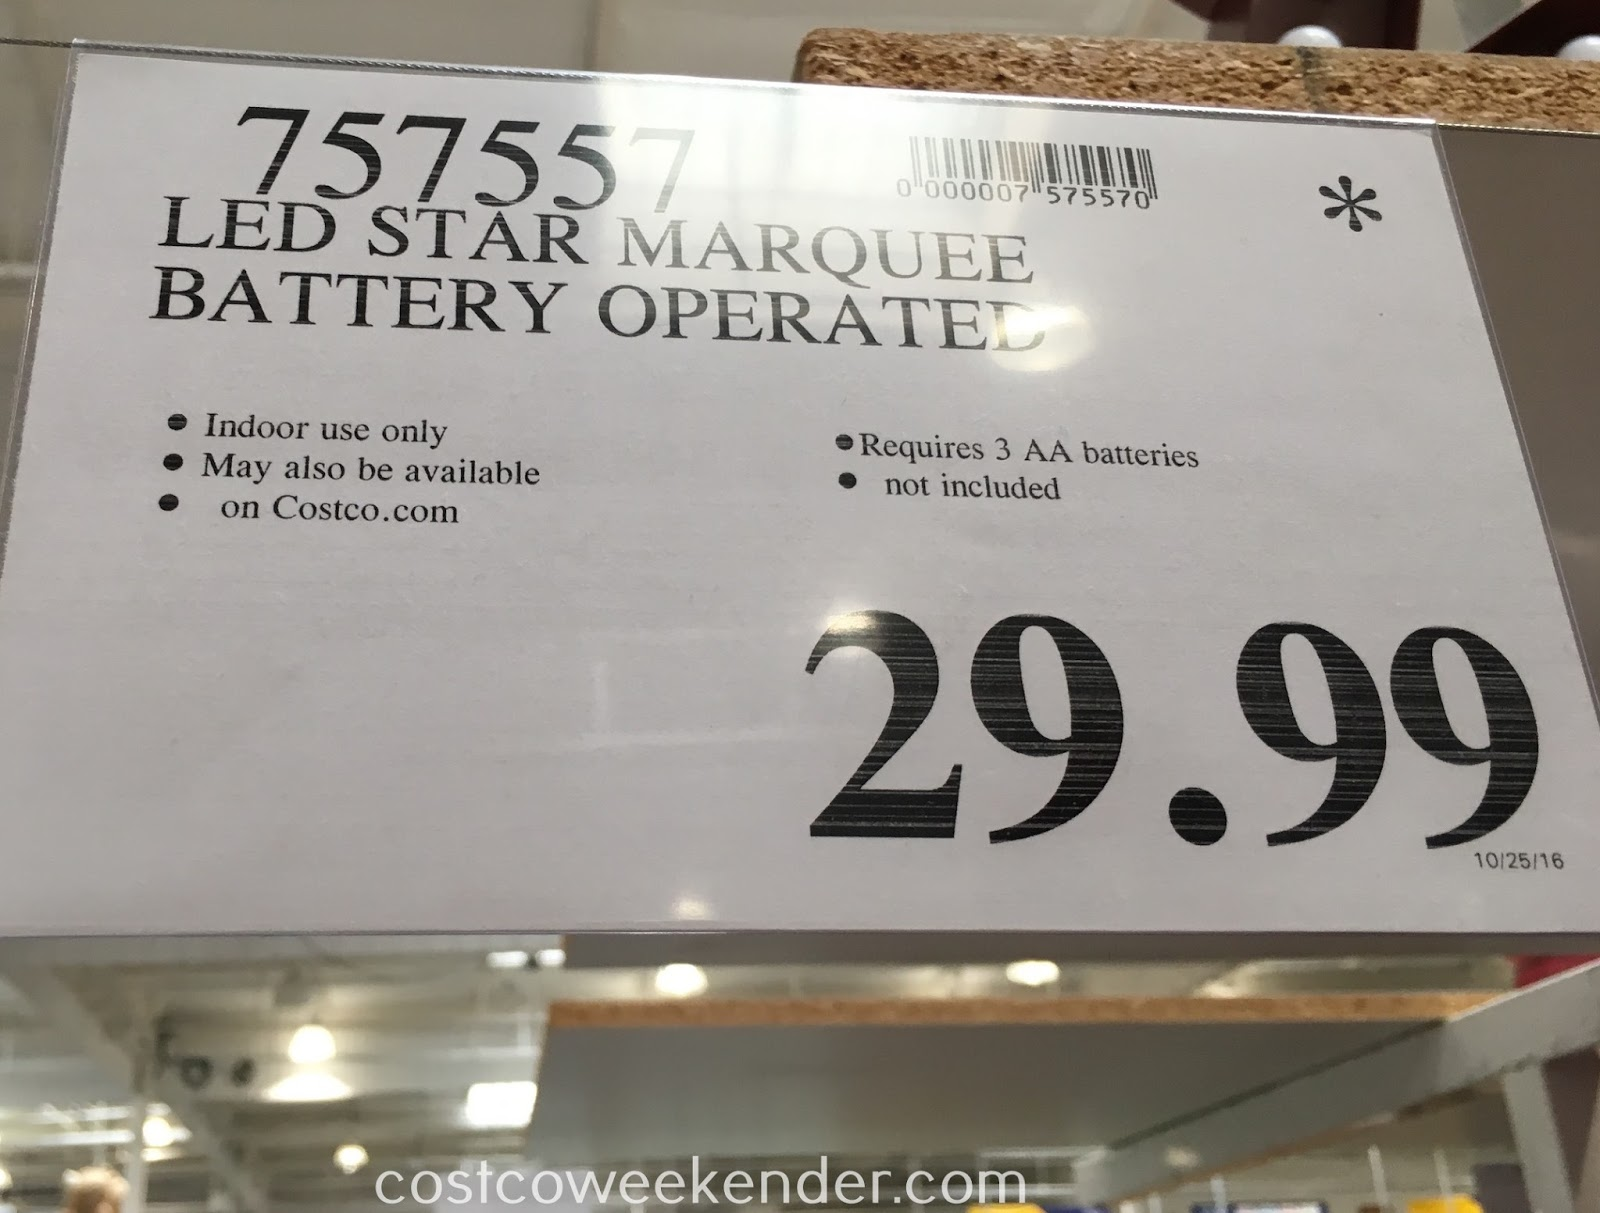 Costco 757557 - Deal for the LED Marquee Star at Costco